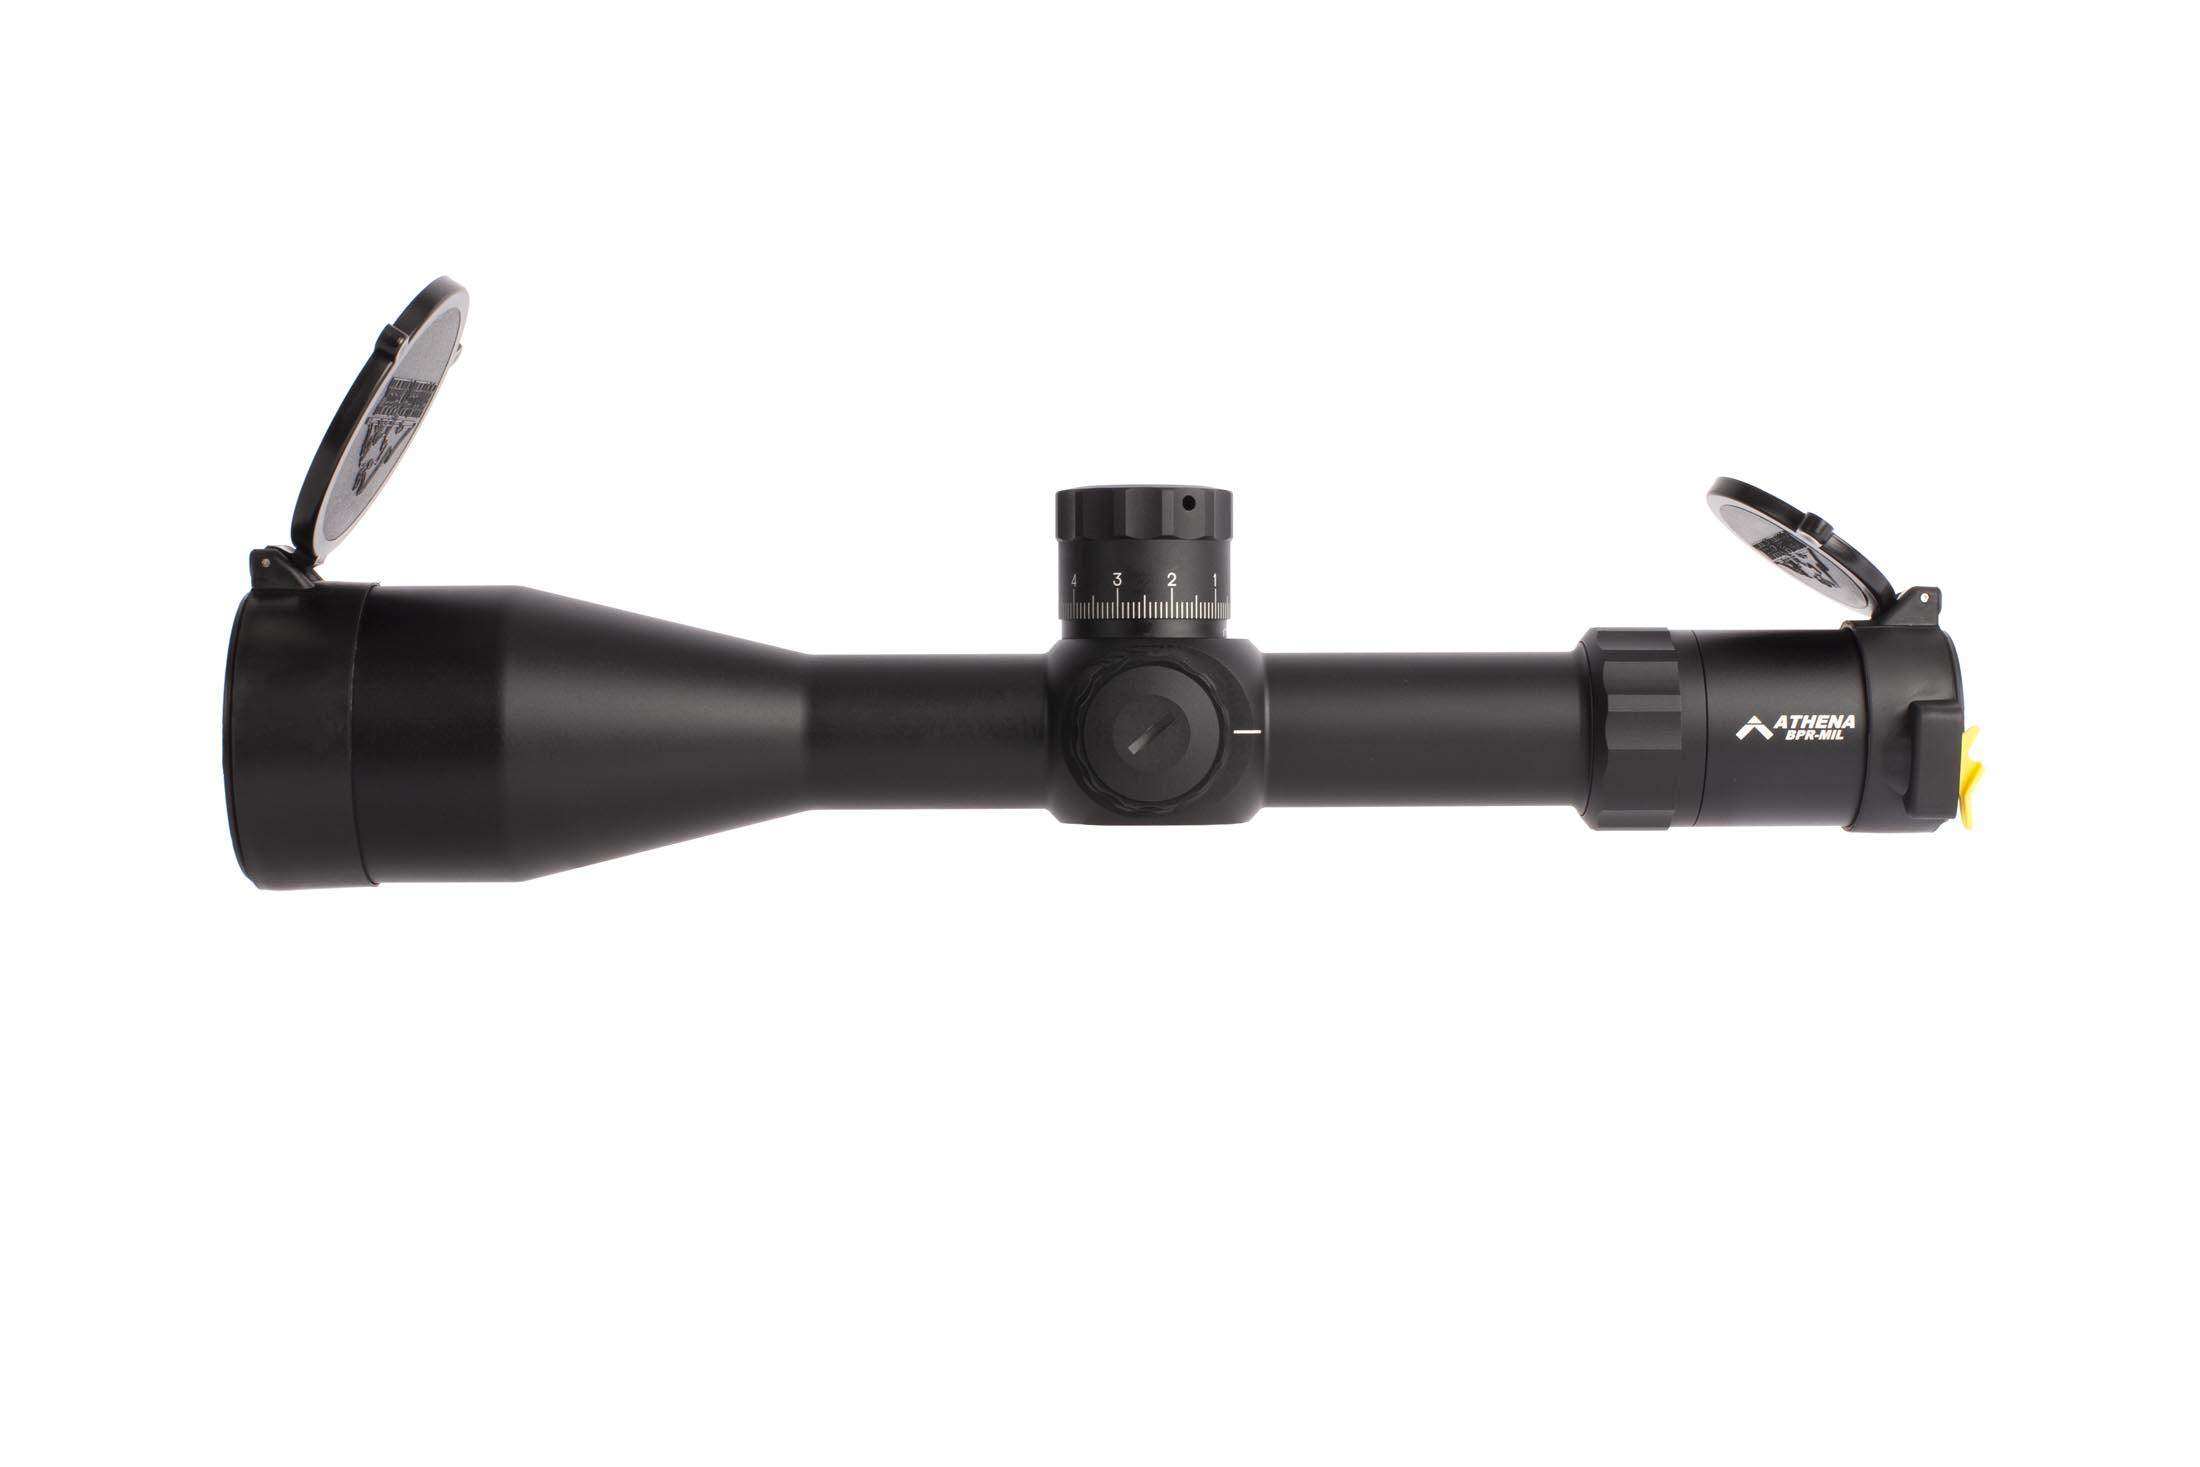 Platinum series PLX5 Athena BPR MIL 6-30x rifle scope features 11 brightness settings with off settings between